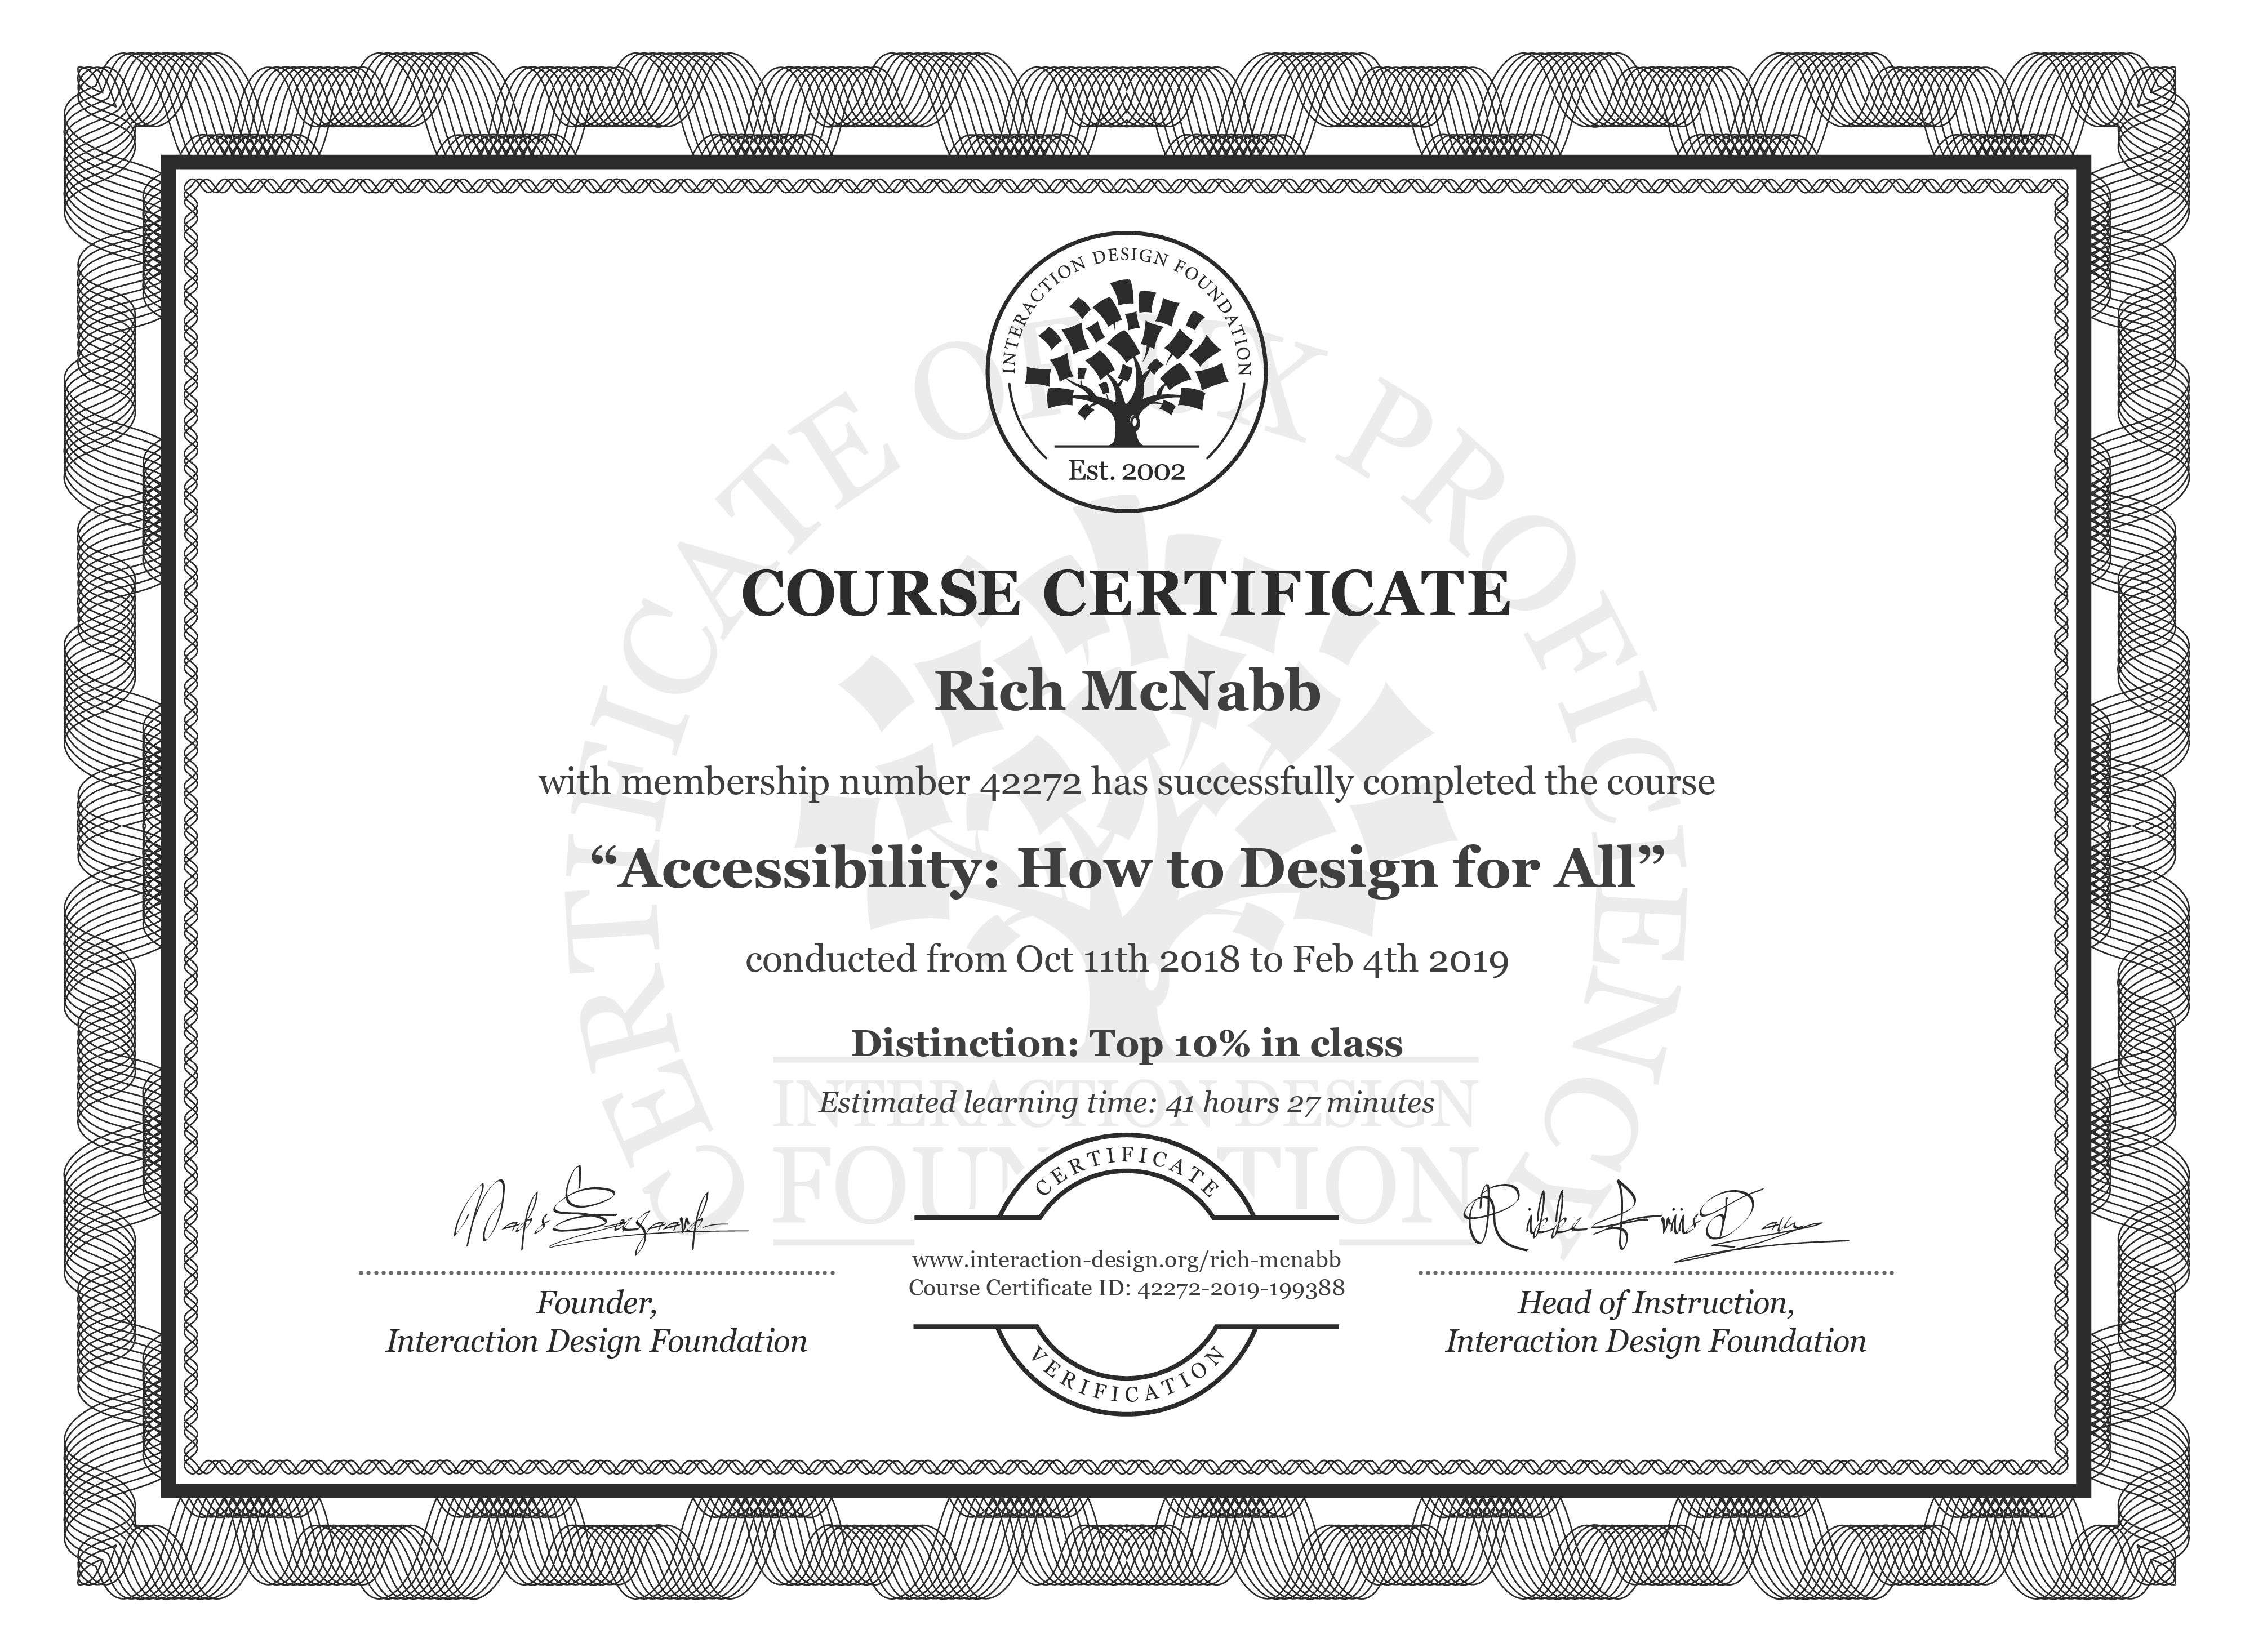 Rich McNabb's Course Certificate: Accessibility: How to Design for All